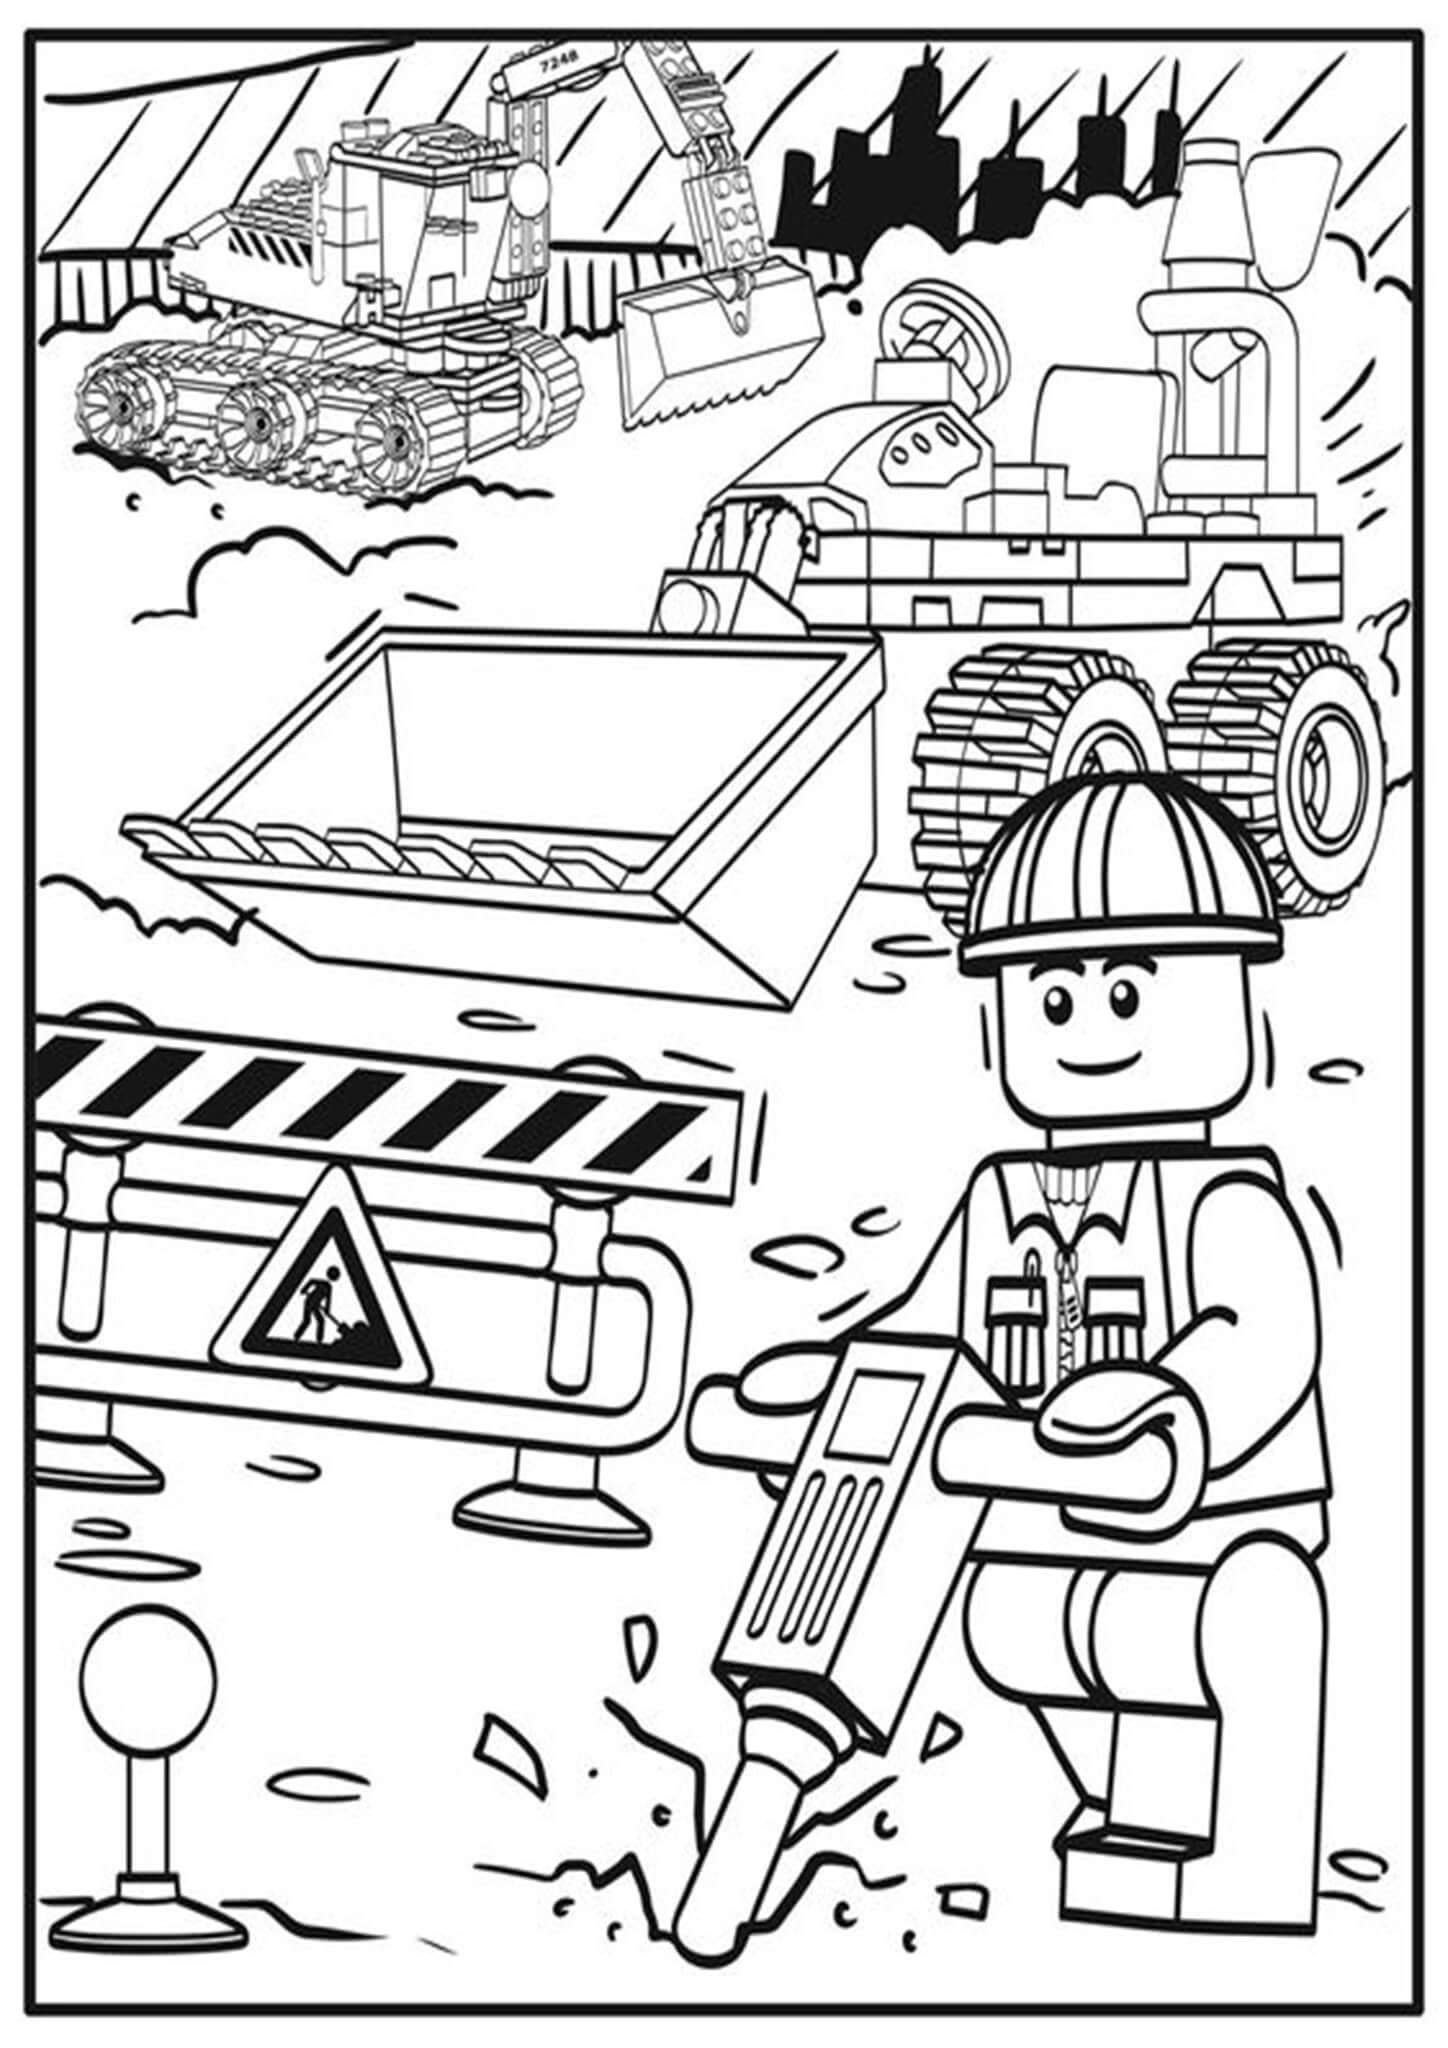 Free Easy To Print Lego Coloring Pages Lego Coloring Pages Lego Coloring Lego Movie Coloring Pages